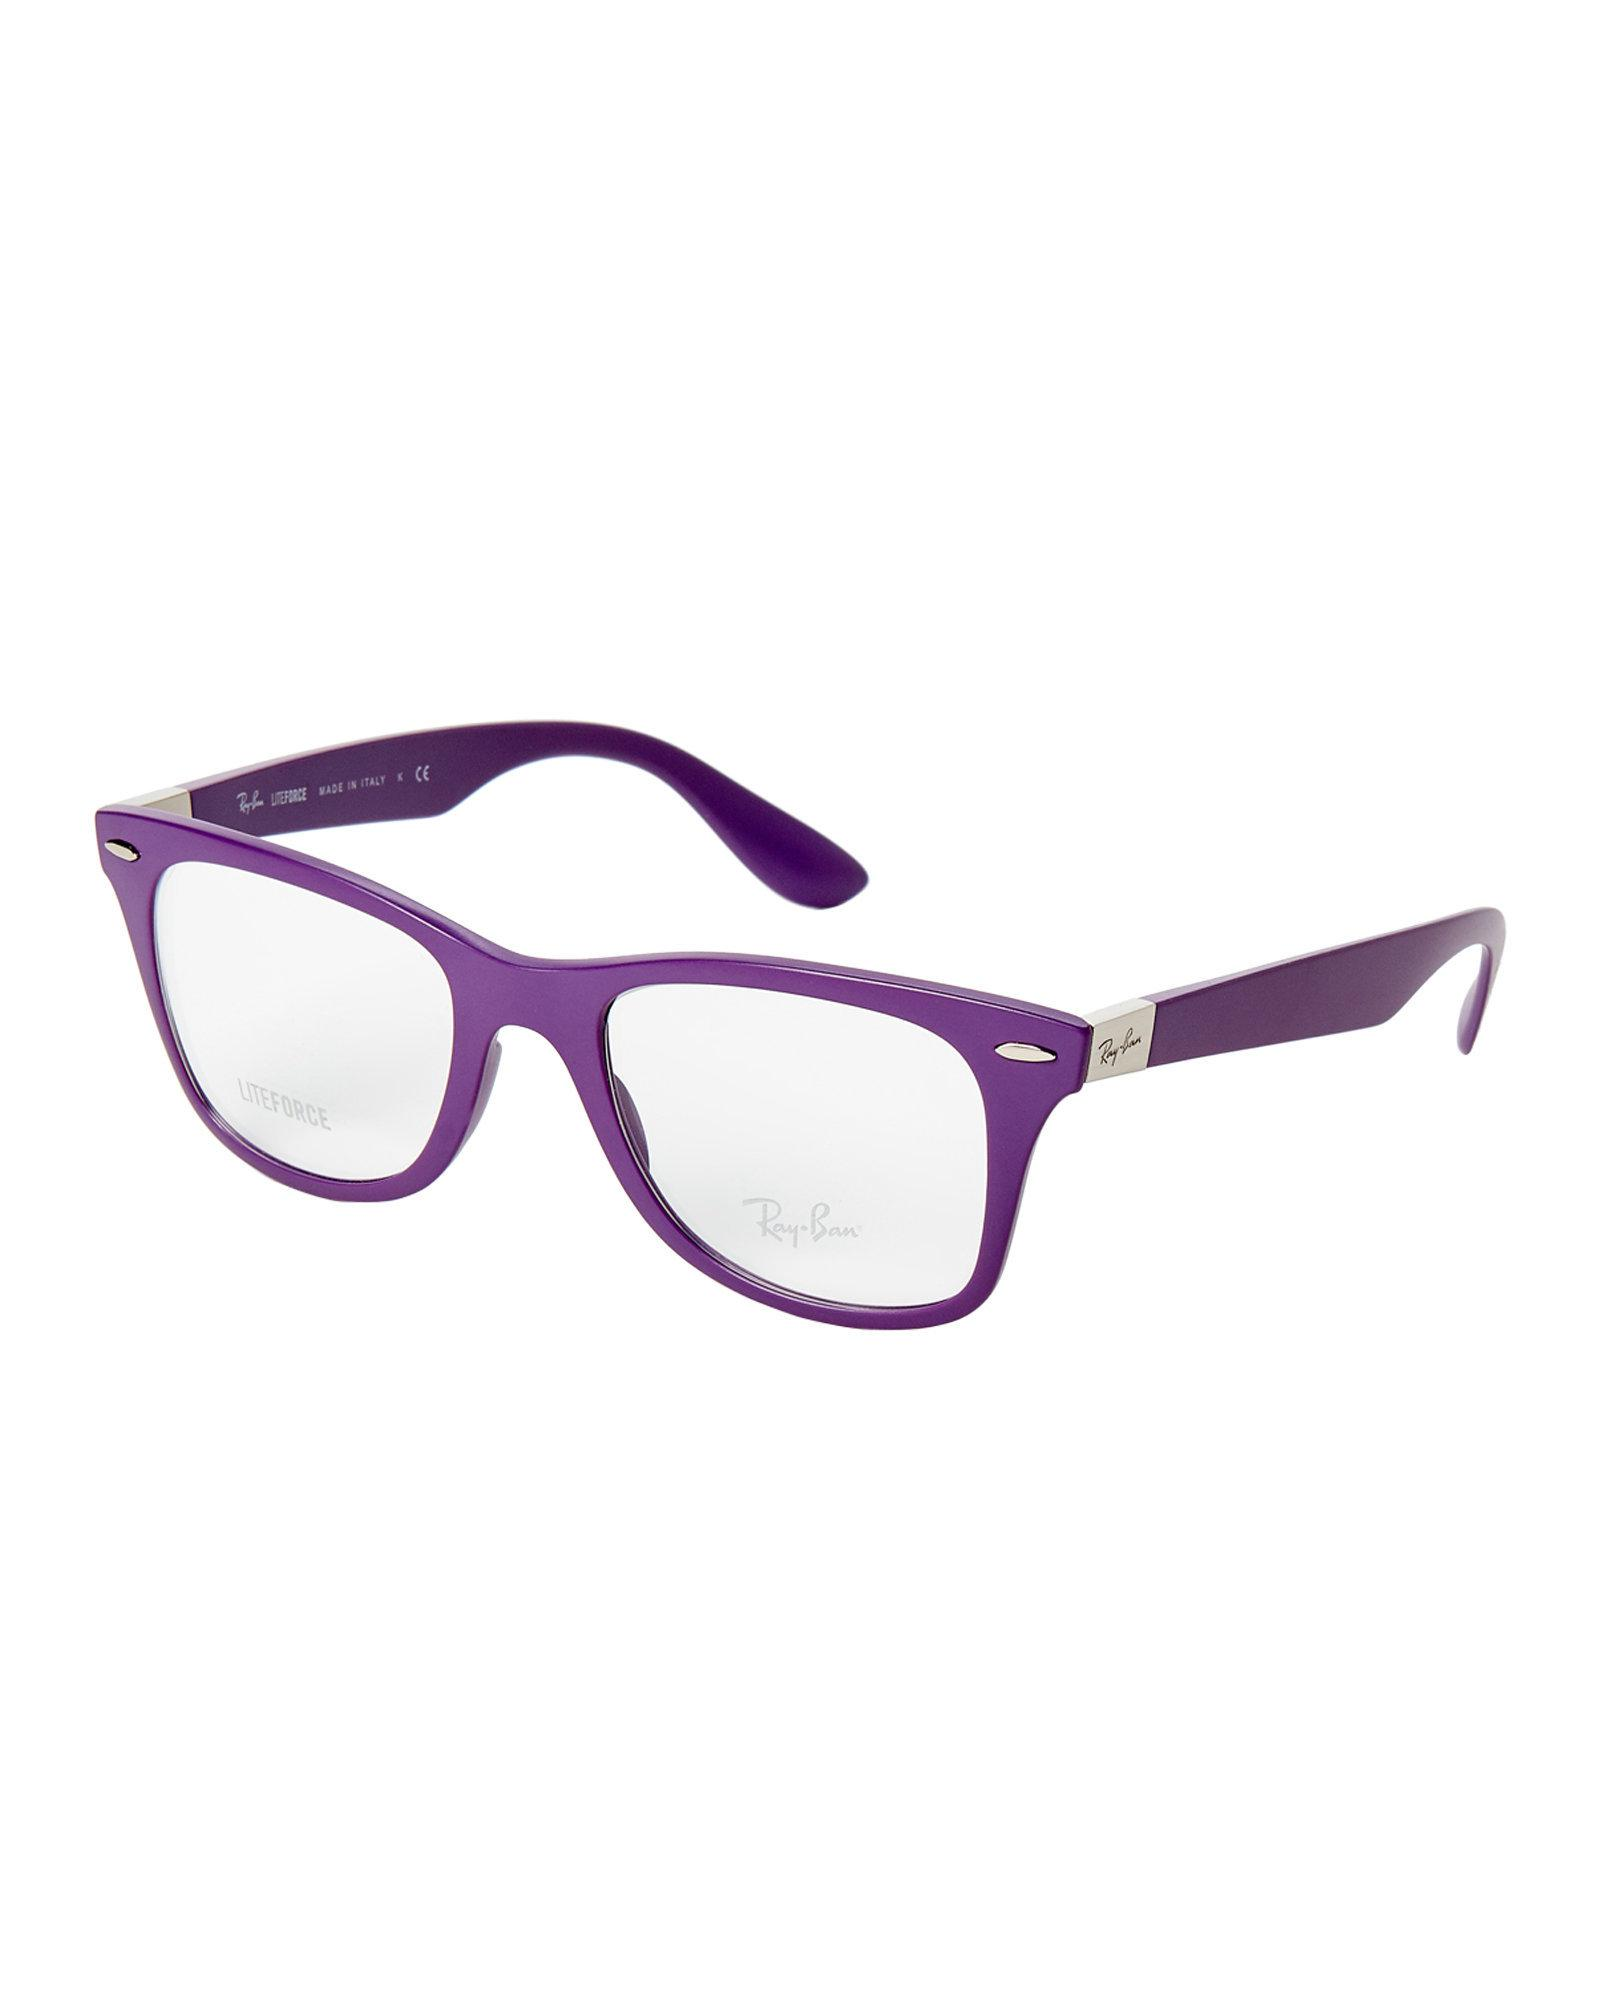 Lyst - Ray-Ban Rb7034 Purple Liteforce Wayfarer Optical Frames in Purple